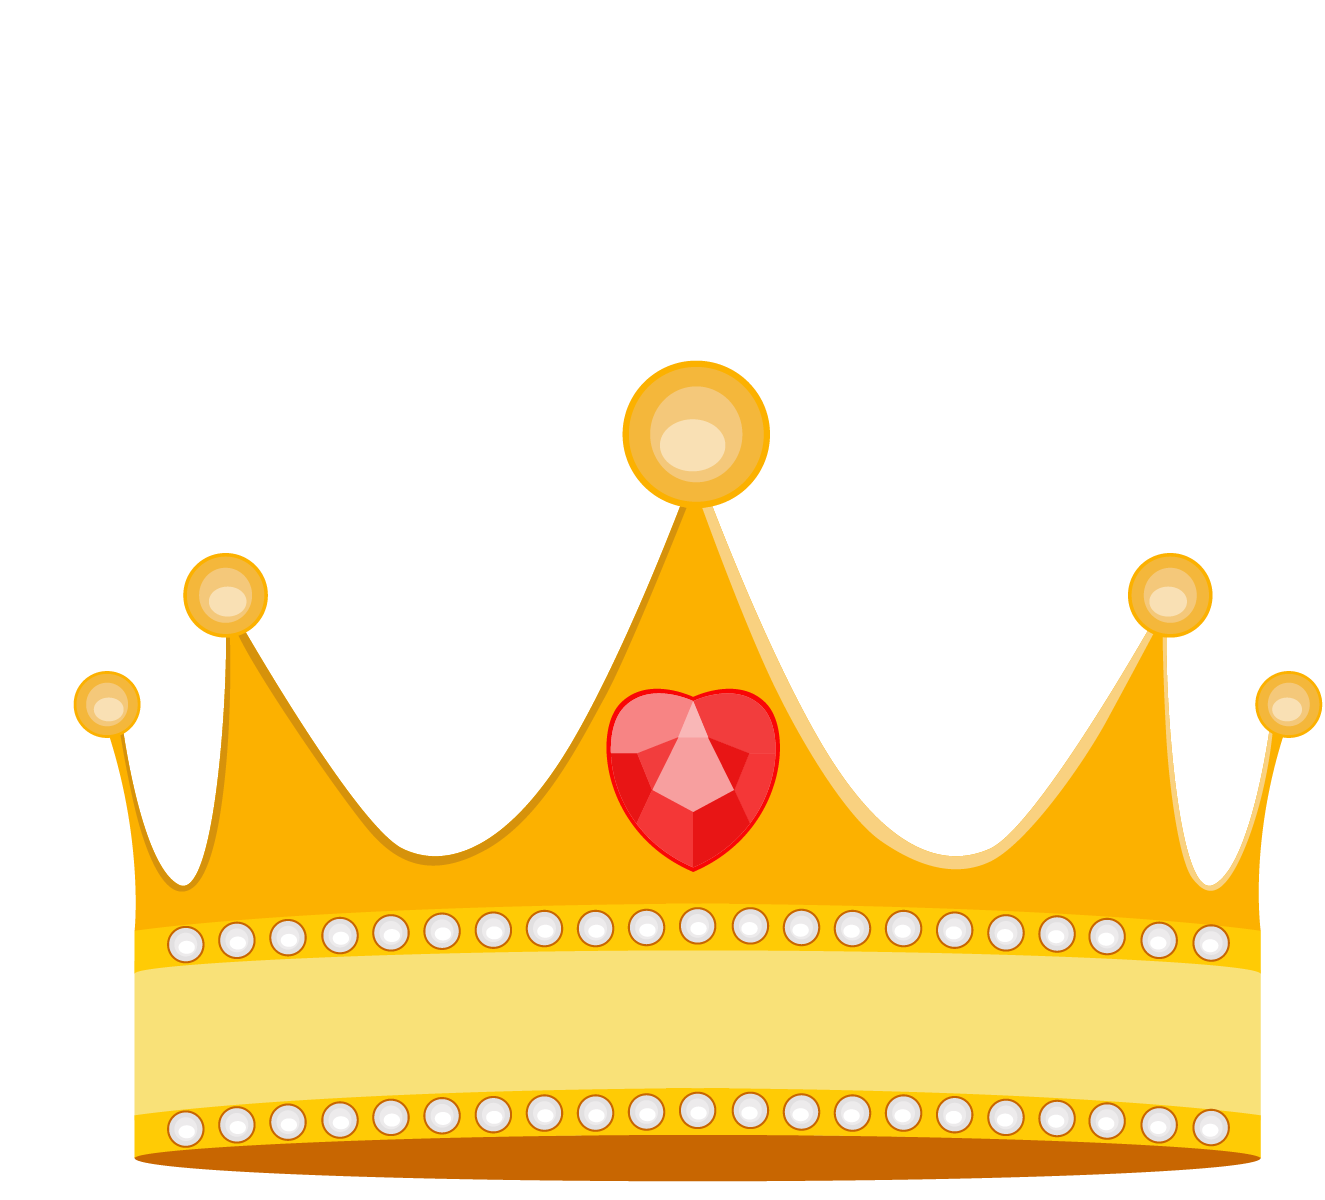 Free clipart princess crown png Cartoon princess crown vector material 1325*1200 transprent Png Free ... png